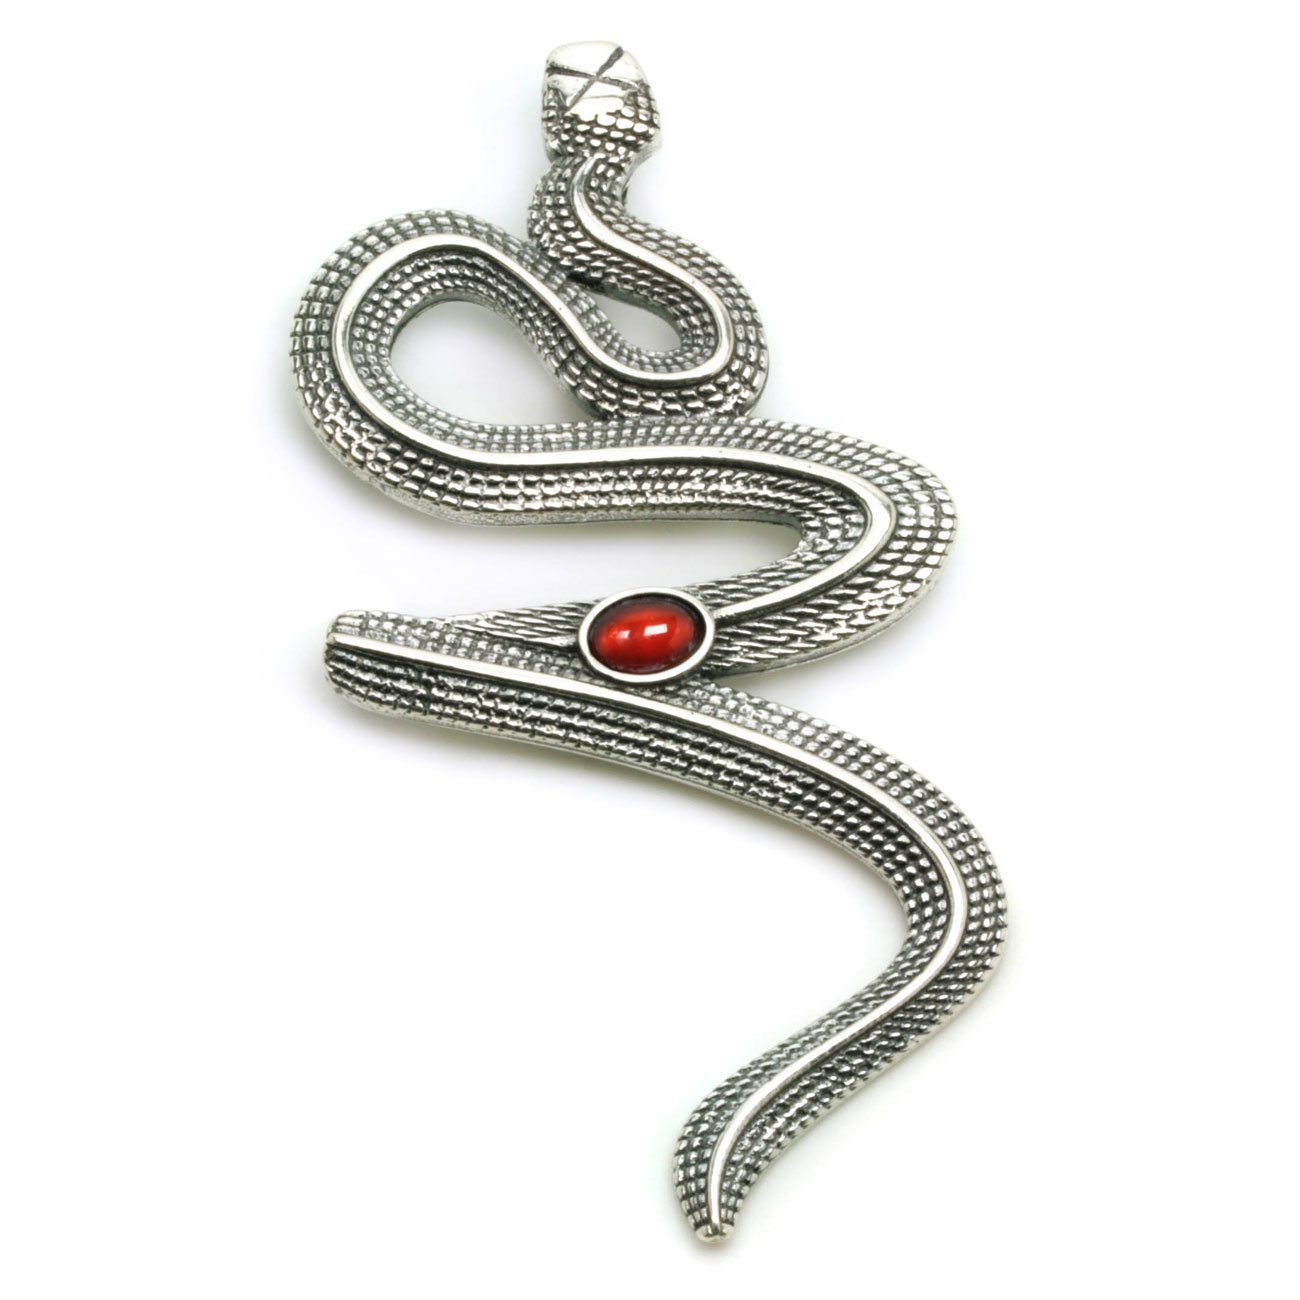 Snake-Serpent - Sterling Silver and Carnelian Large Pendant